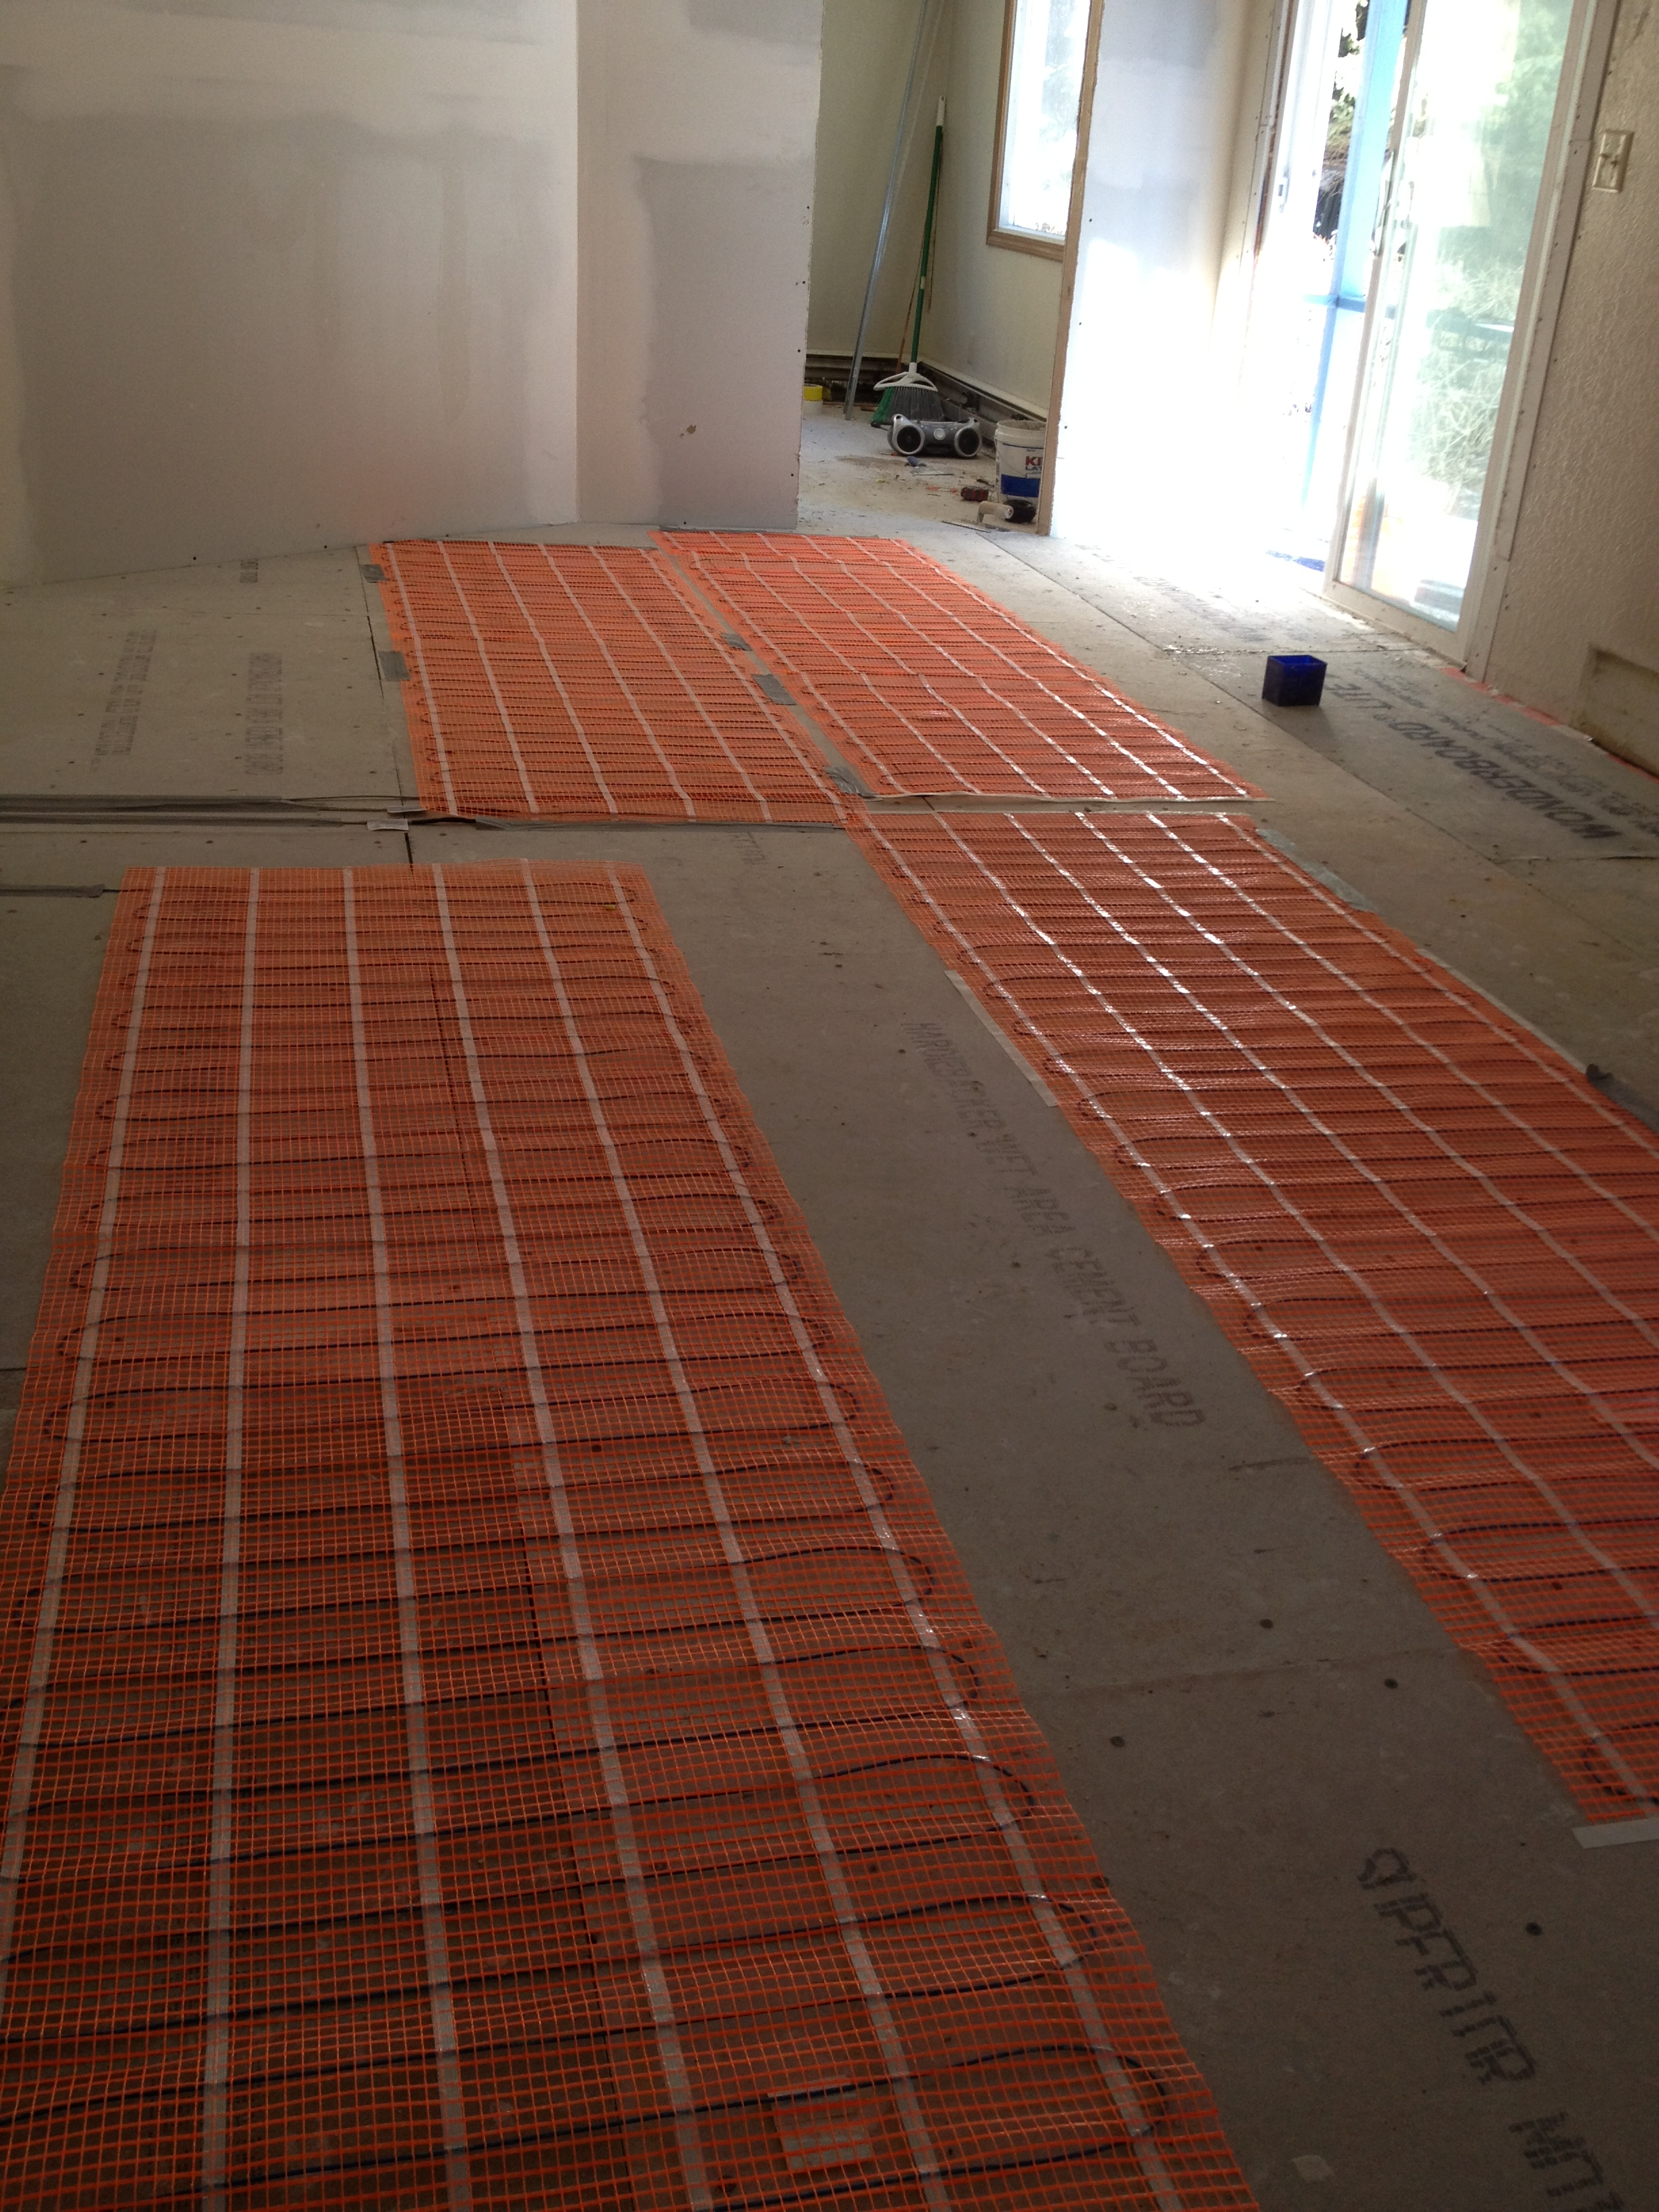 Radiant heat flooring materials images Radiant floors